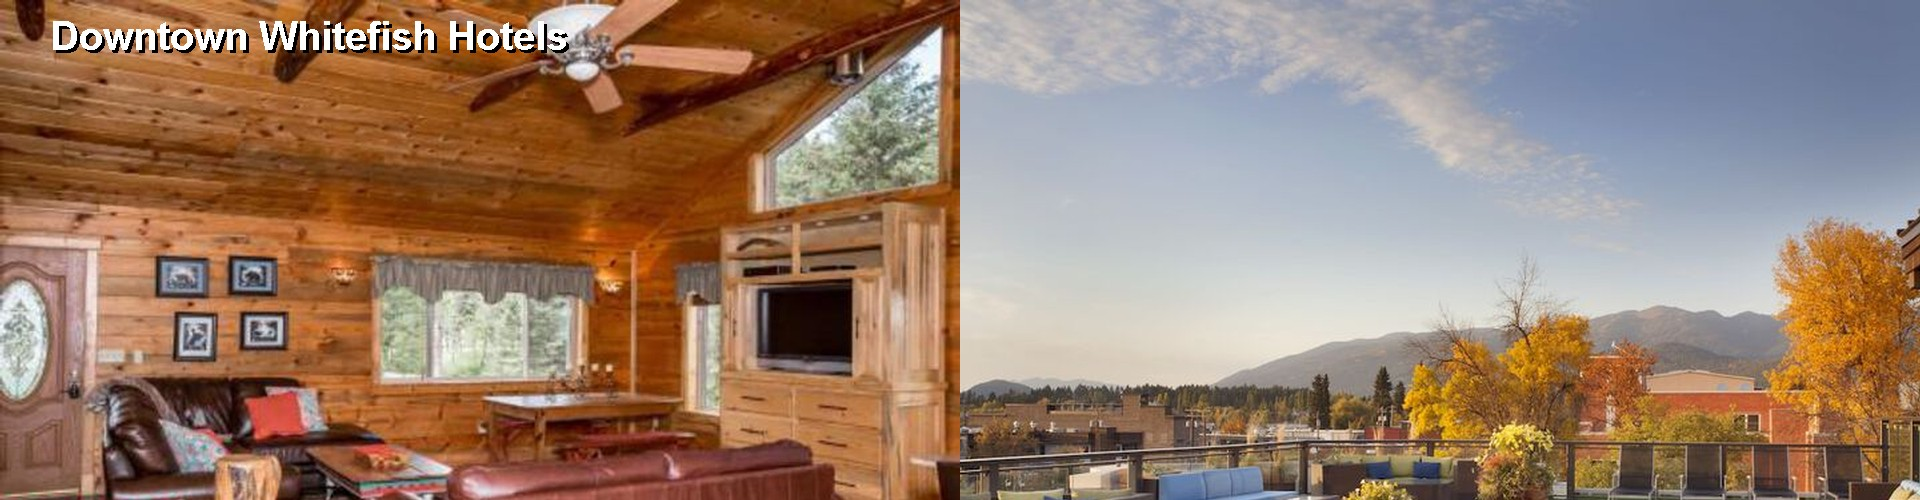 $87+ FINEST Hotels Near Downtown Whitefish (MT)